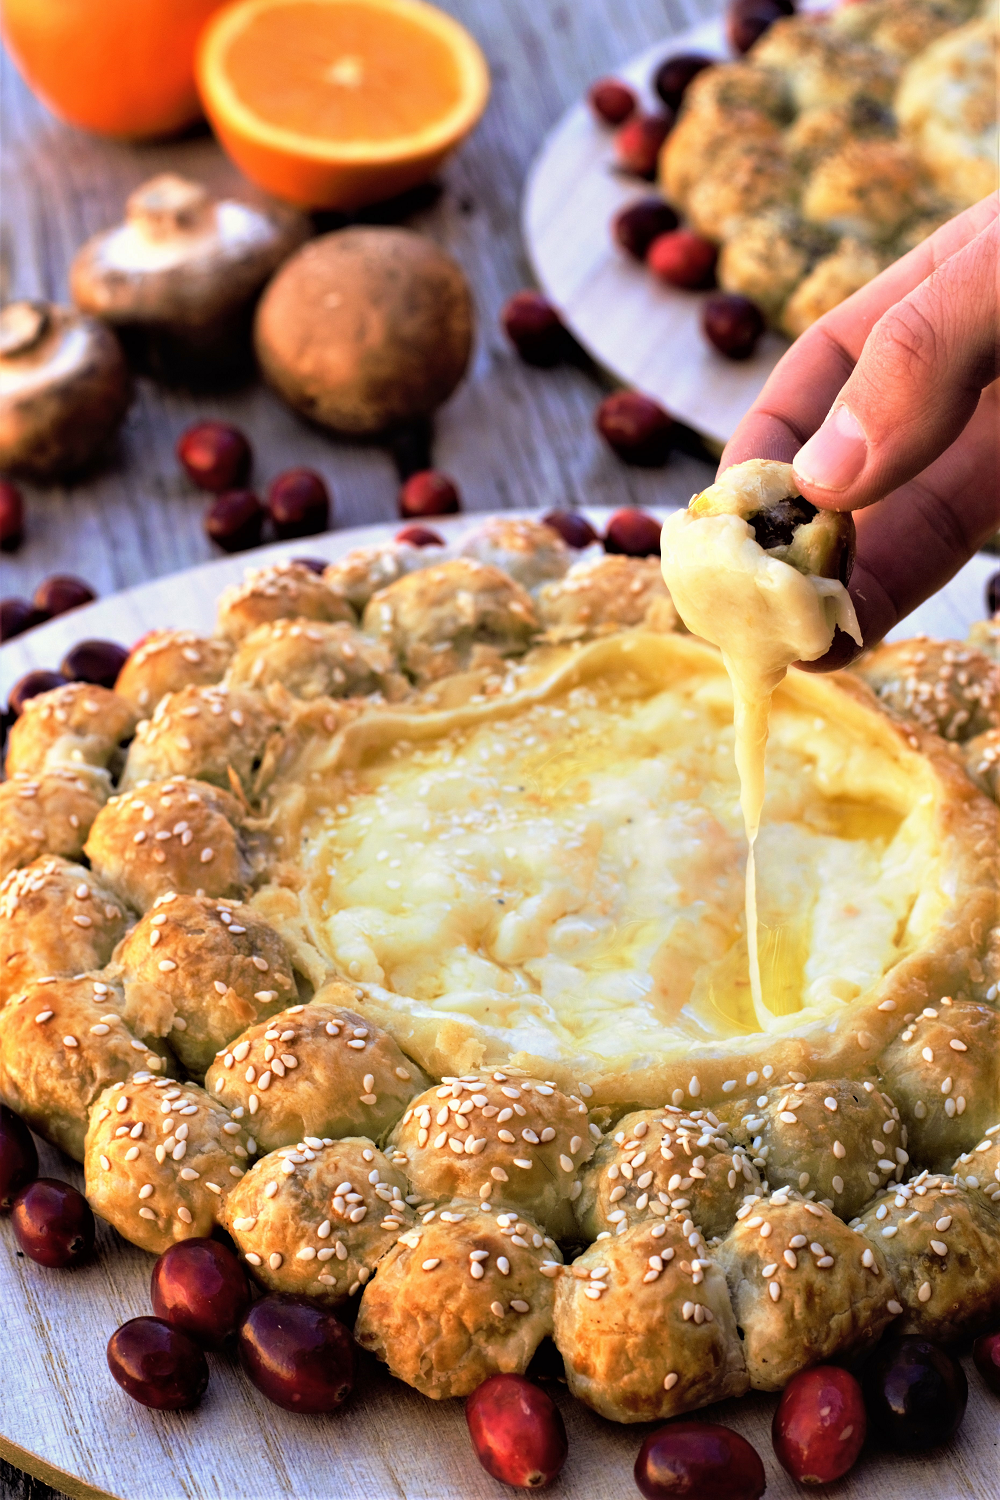 Crispy, flaky pastry bites stuffed with sausage, mushrooms, & caramelized onions, surrounding a whole wheel of gooey melted brie for dipping!